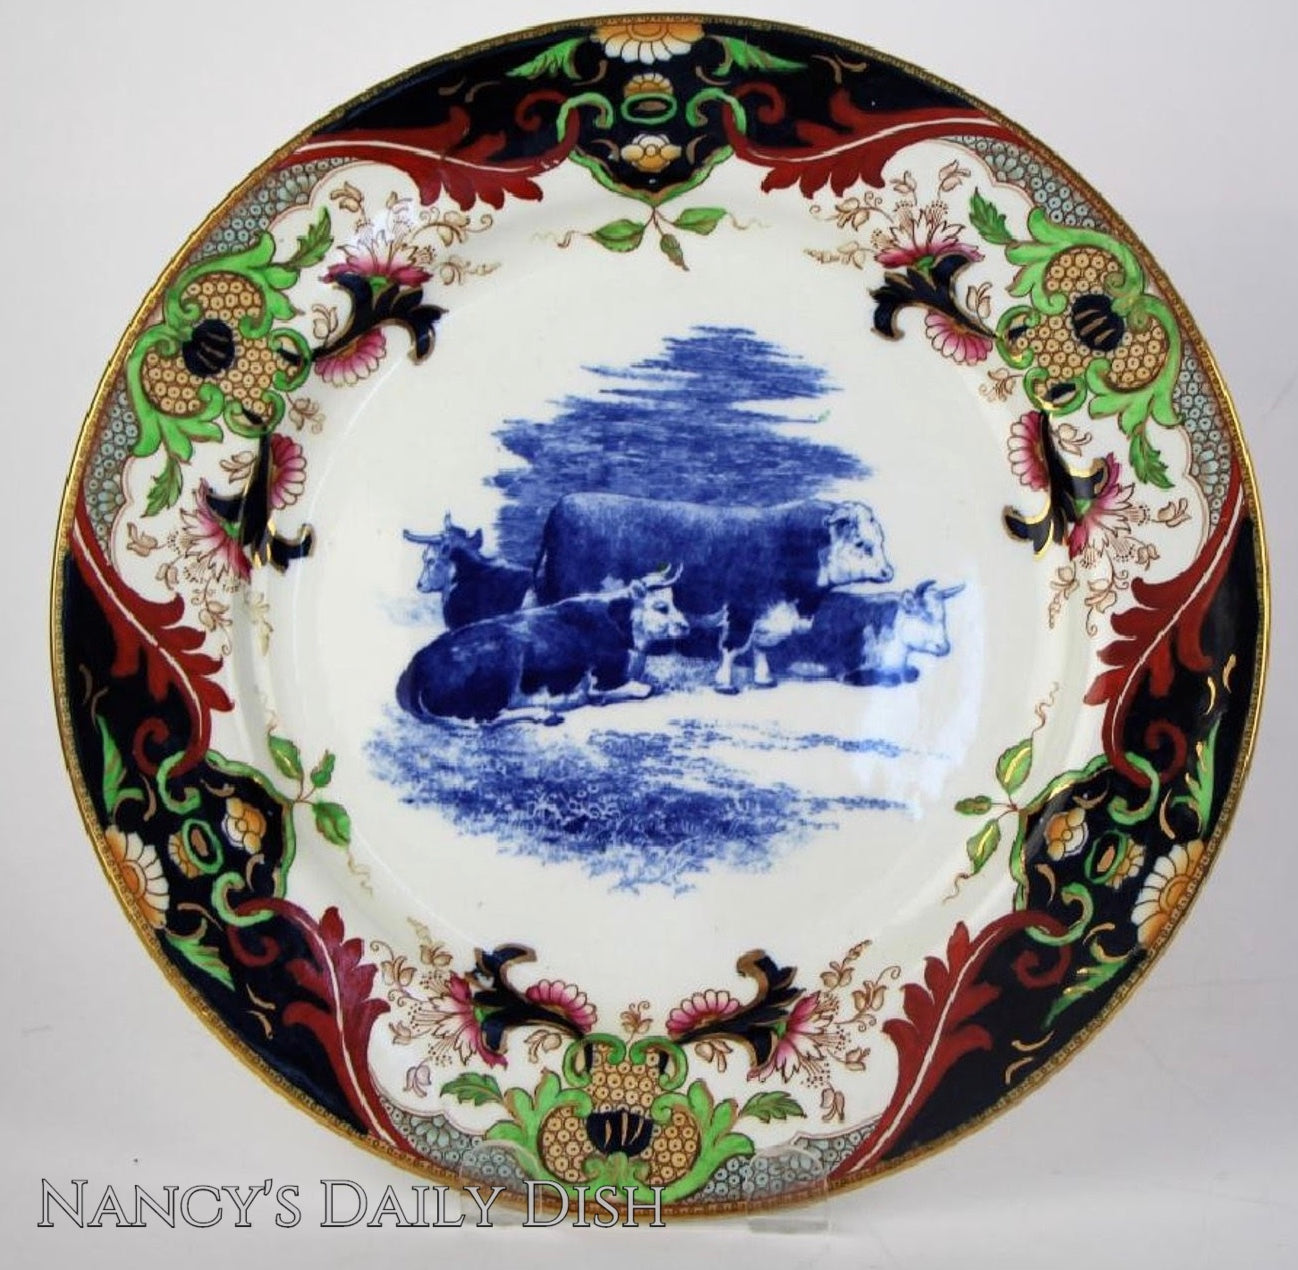 1902 Royal Doulton Antique Resting Cattle Cows Matsumai Flow Blue Transferware Plate Chinoiserie Border & 1902 Royal Doulton Antique Resting Cattle Cows Matsumai Flow Blue Tran